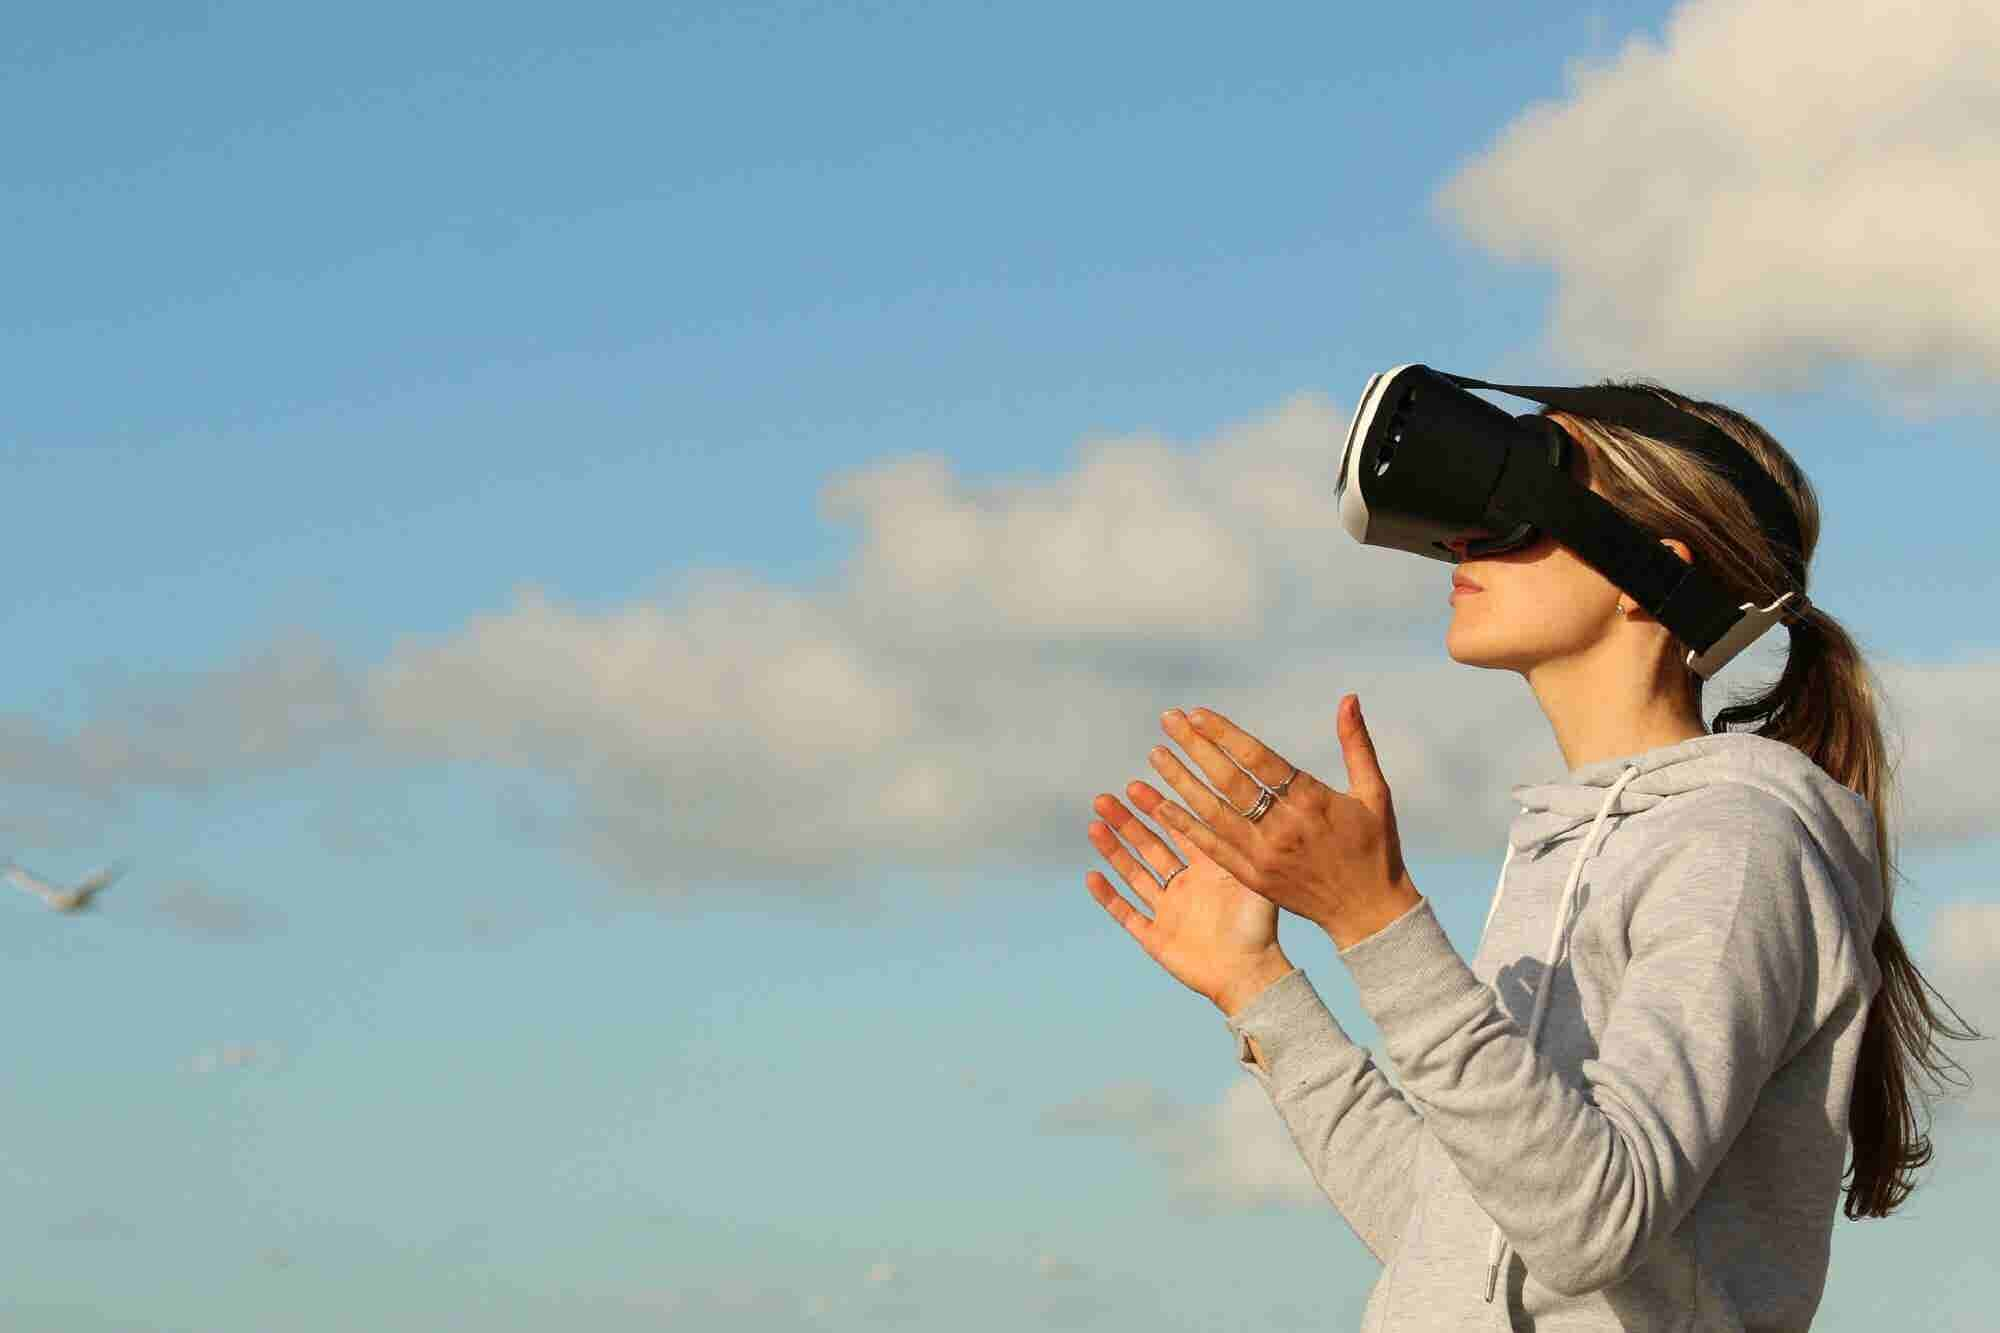 Augmented Reality in Businesses: What Will the Future Look Like?